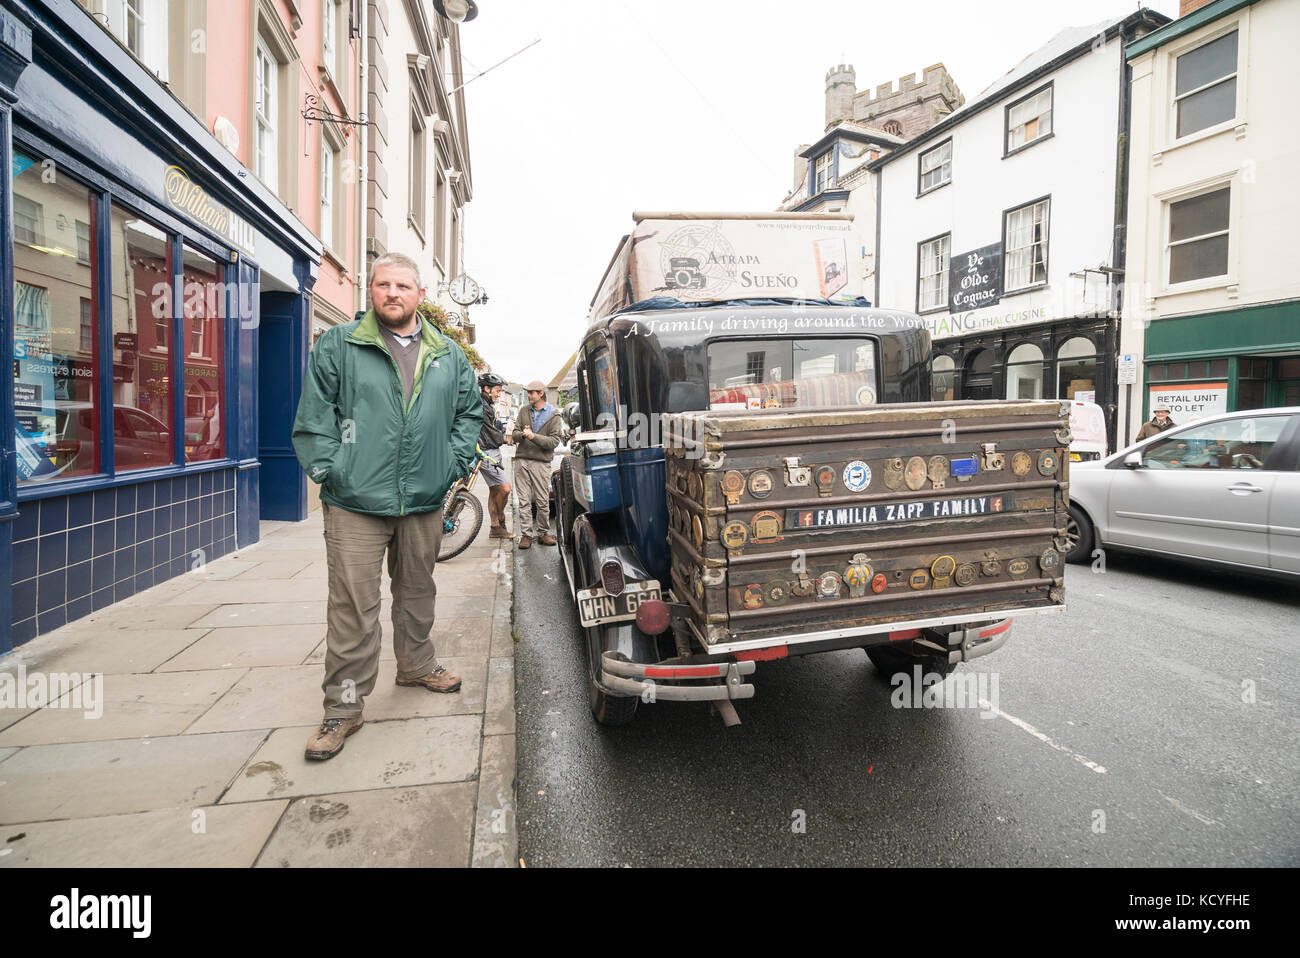 Zapp Family's car, a vintage 1928 Graham Paige stops in Brecon Town, Wales Stock Photo